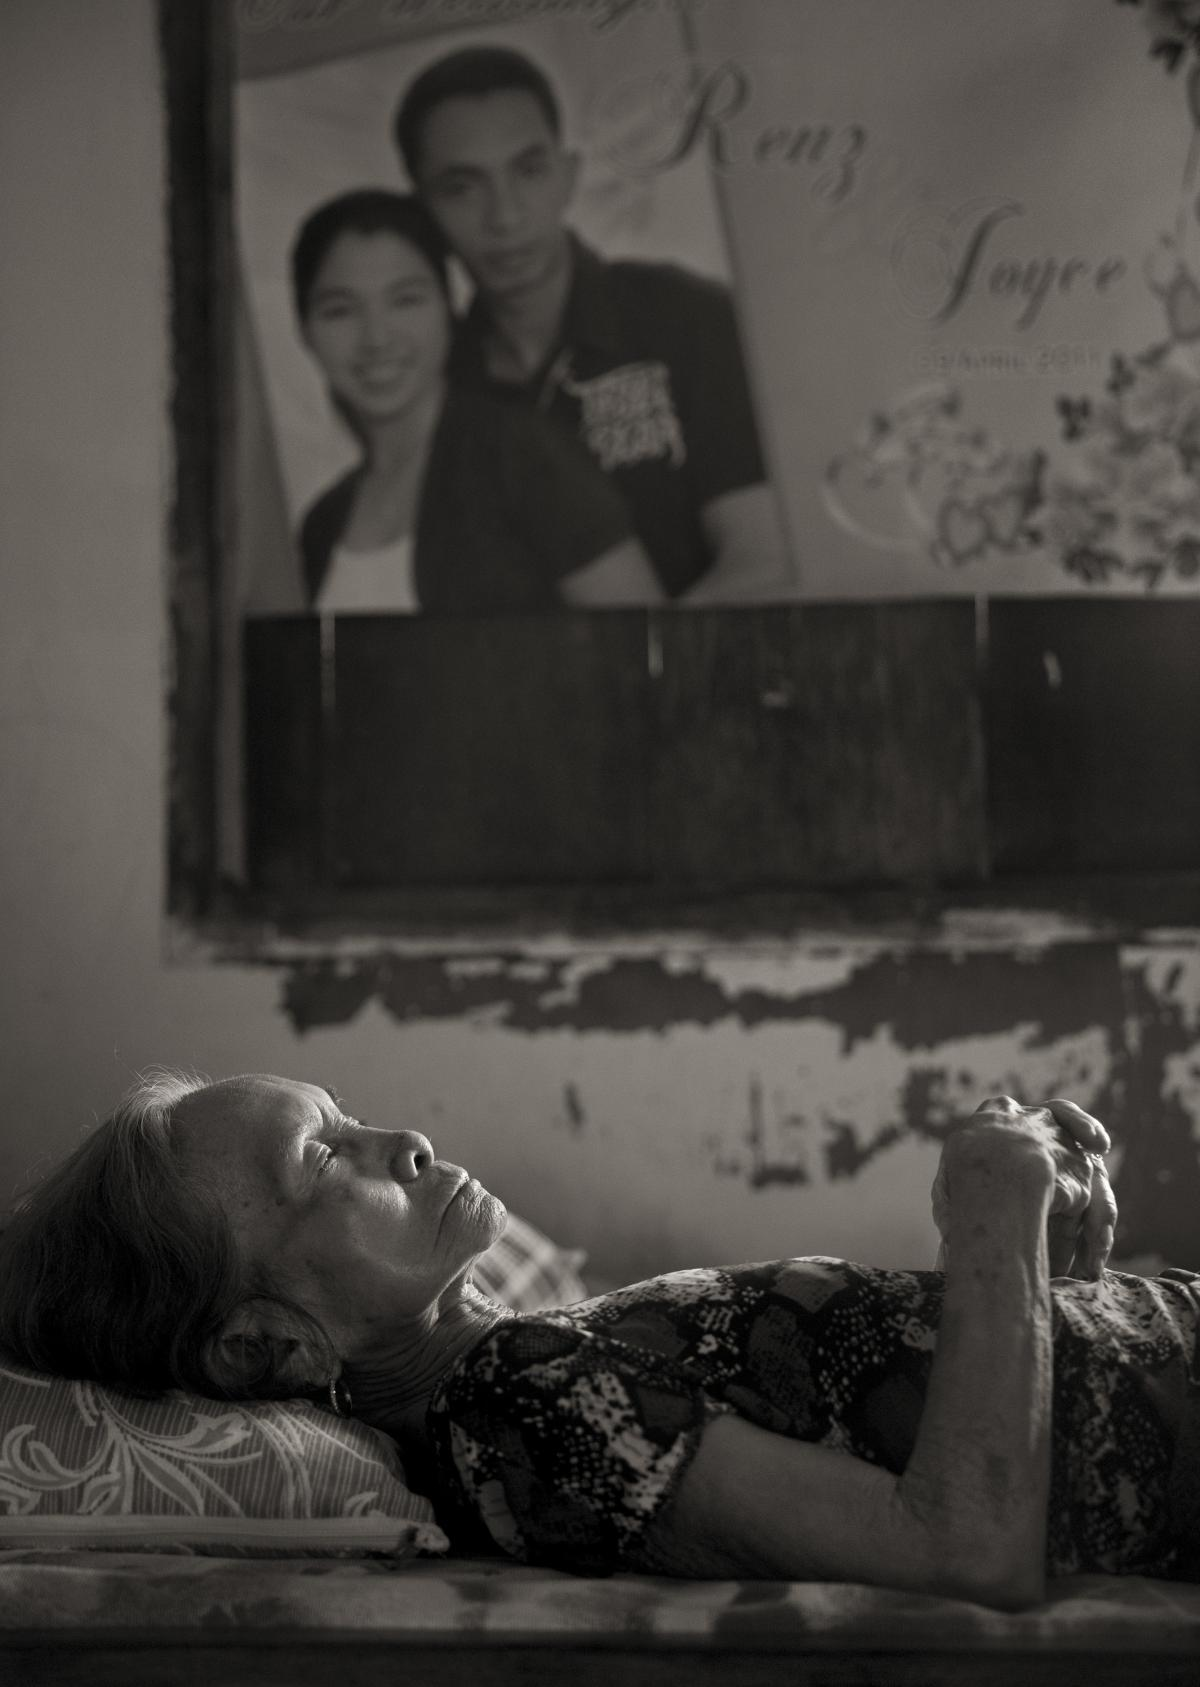 Januaria Galang Garcia takes a midday nap in the village of Mapaniqui in Pampanga, Philippines, on May 19, 2019. Garcia, who was one of the women subjected to sexual slavery during World War II, died on Sept. 3, 2021. She was 9 years old when the Japanese